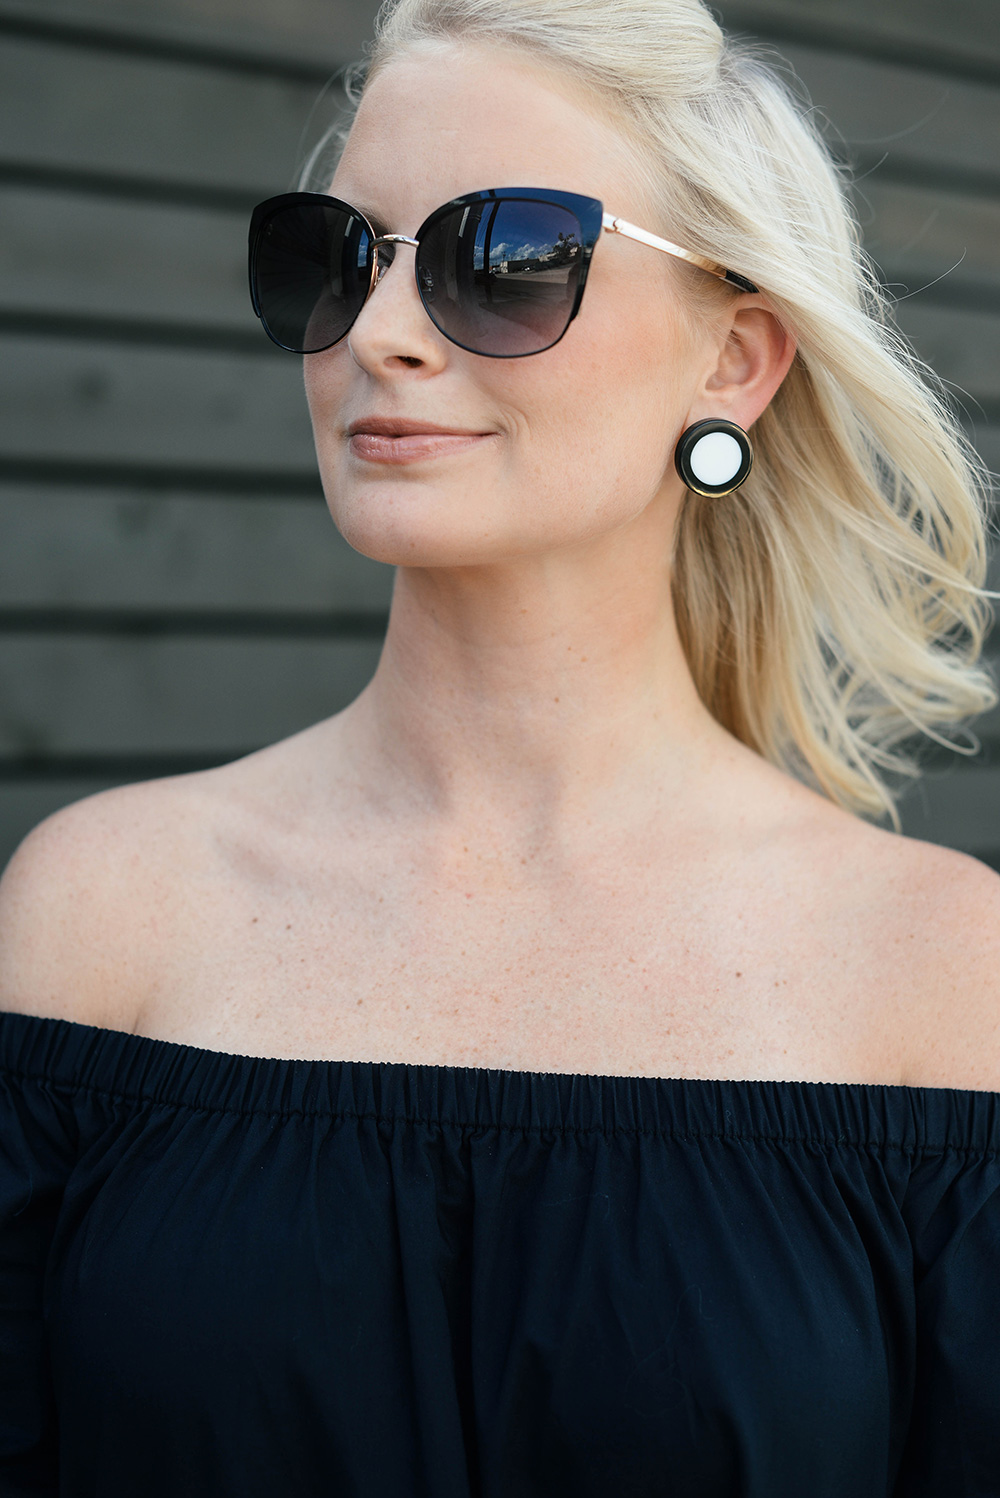 Kate Spade New York Sunglasses | The Style Scribe